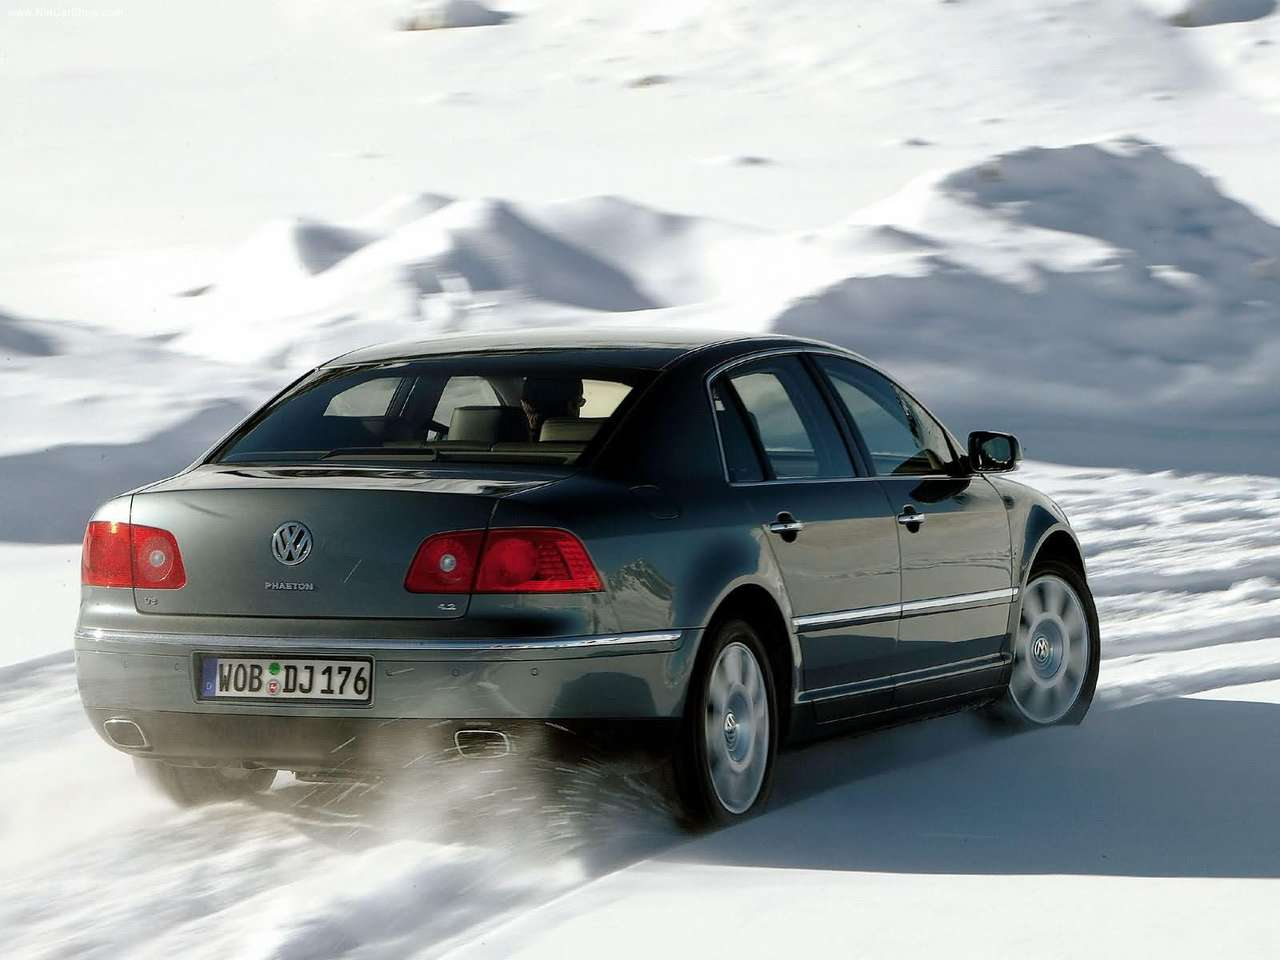 Volkswagen phaeton 2004 photo - 2